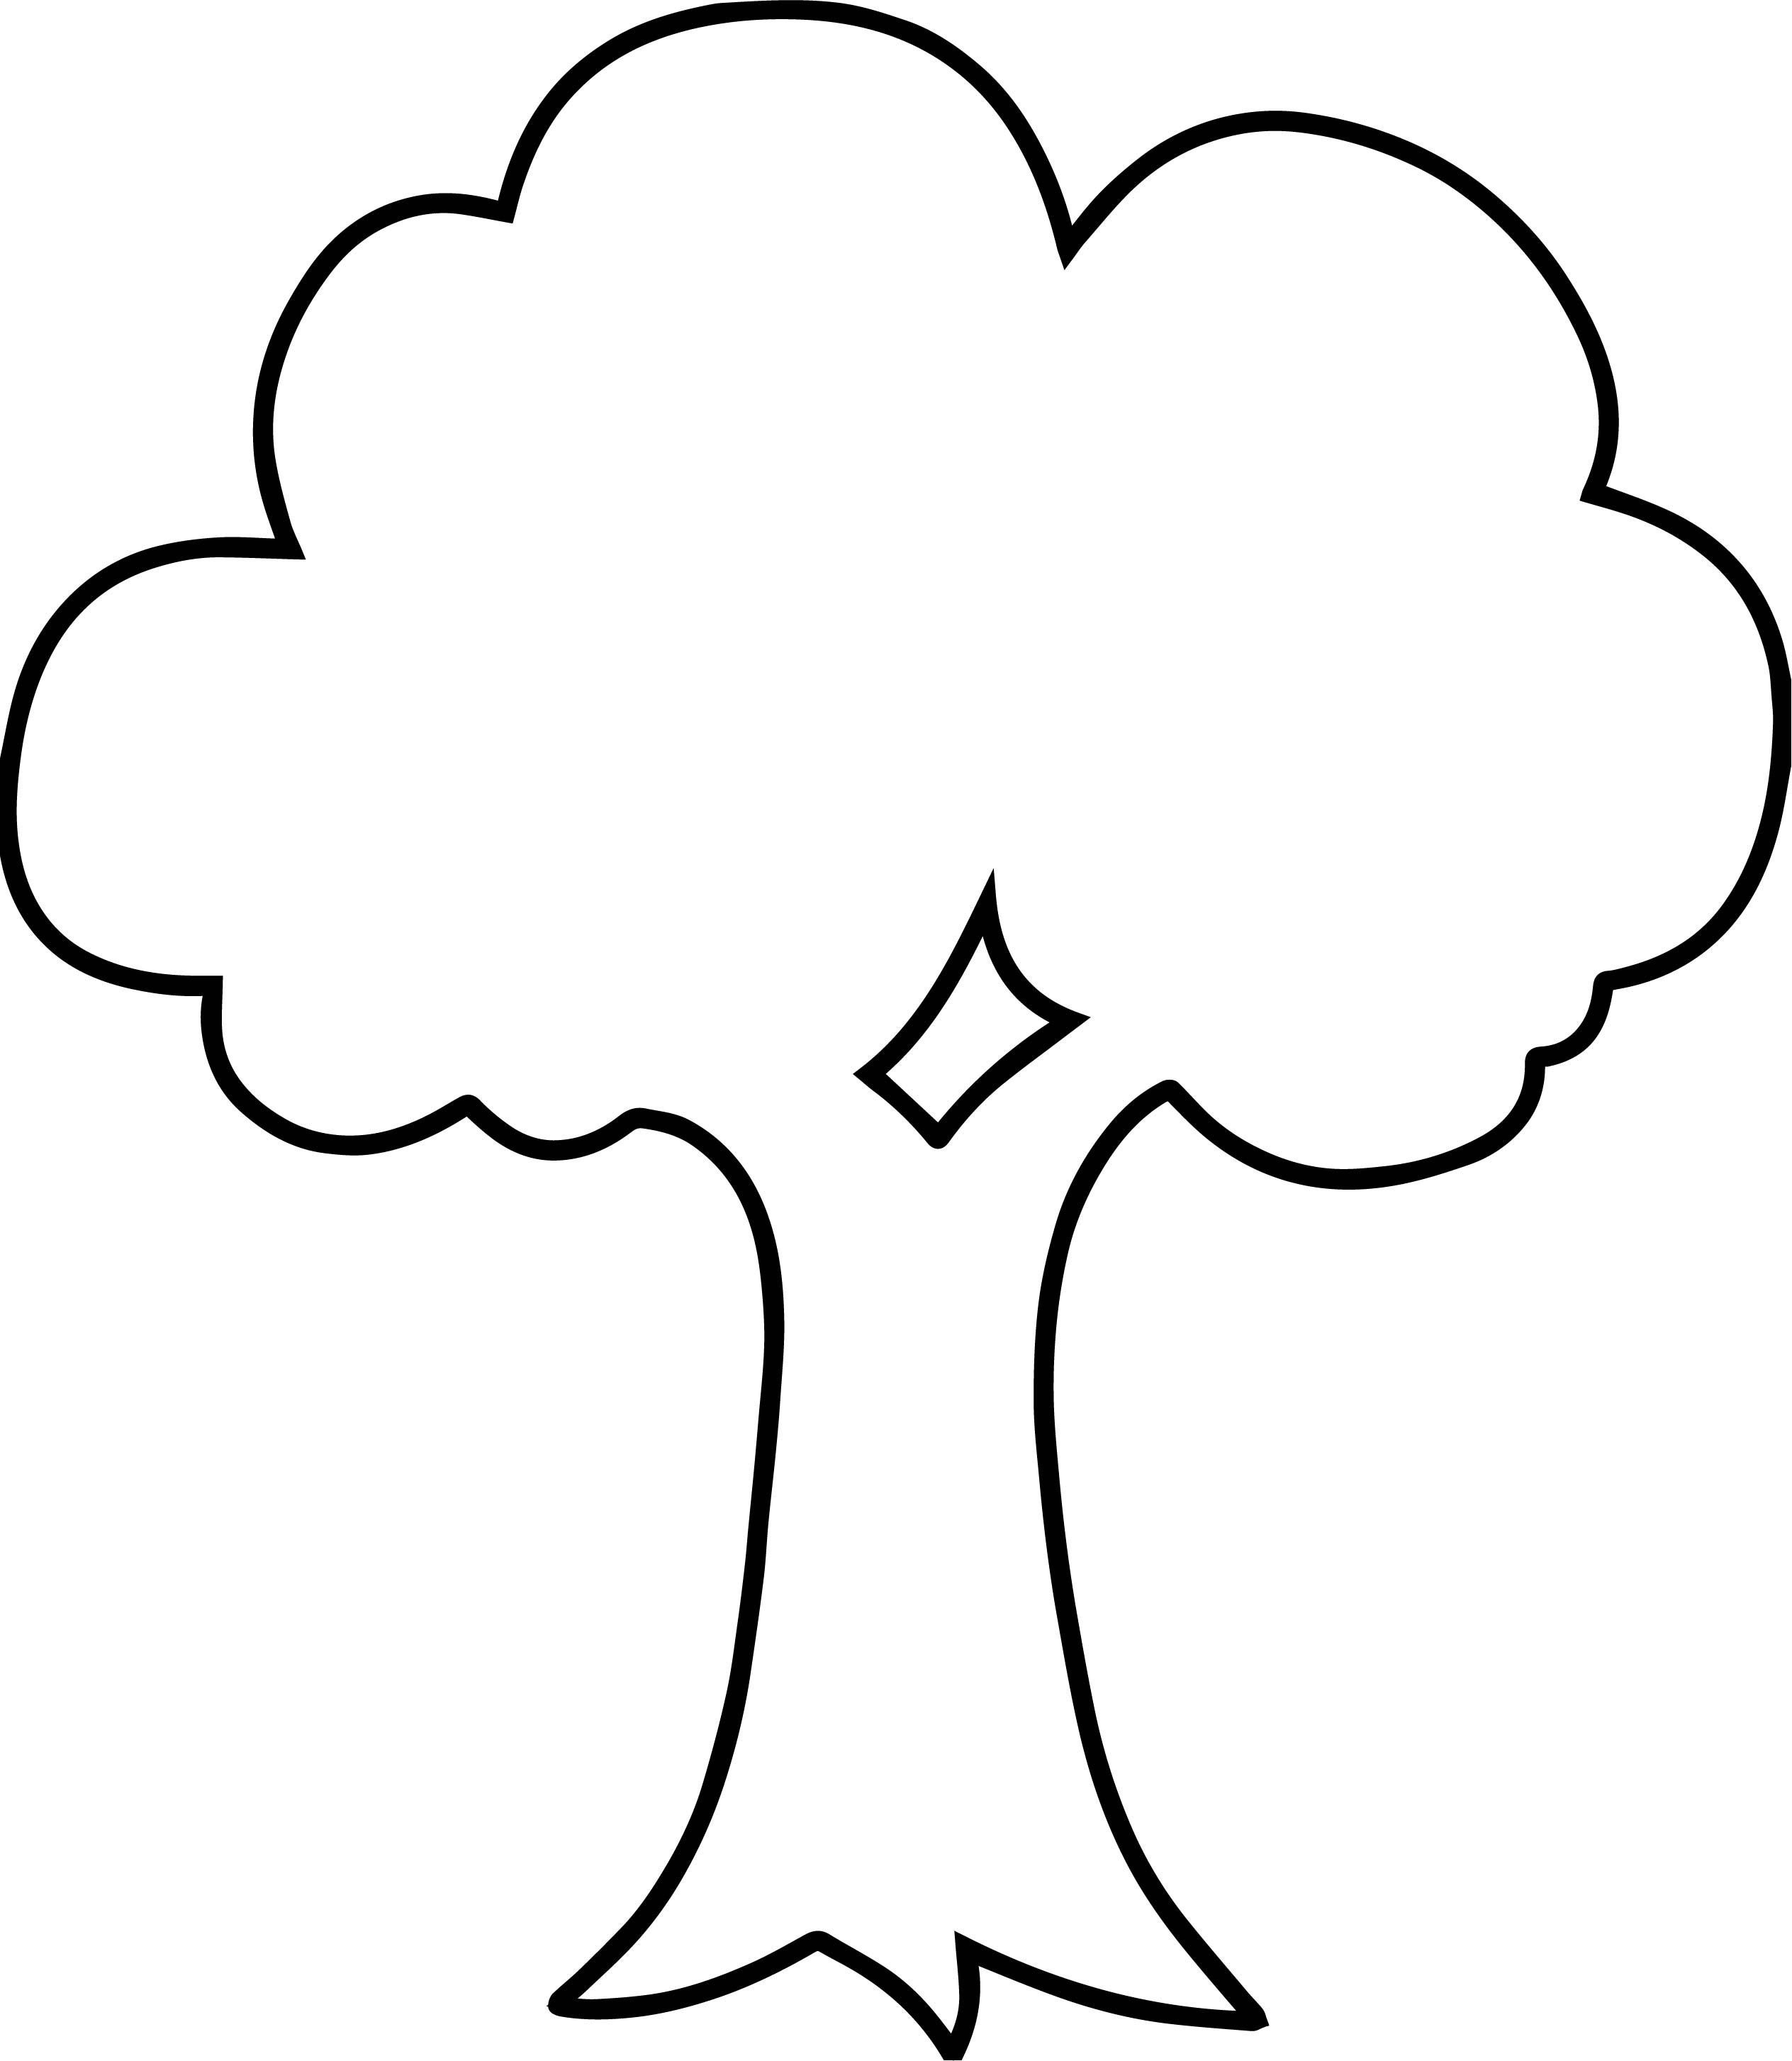 Awesome Empty Apple Tree Coloring Page Tree Coloring Page